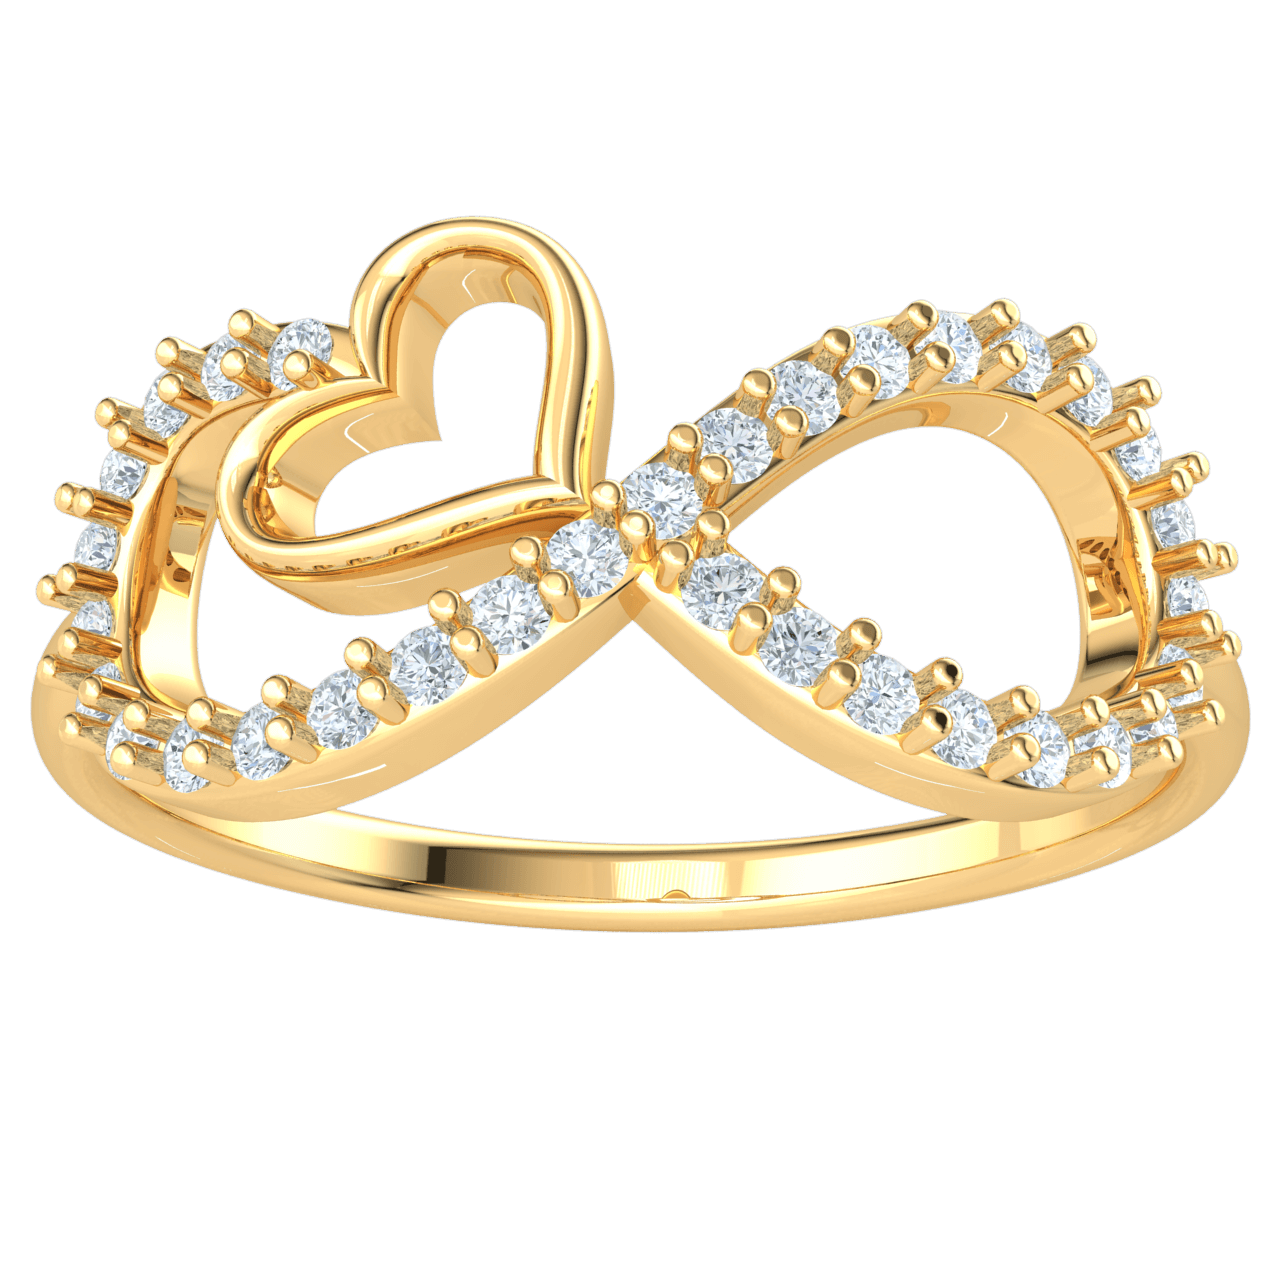 0.22 Ctw Stunning Display Of Real Hearts And A White Diamond Filled Infinity Symbol Band in JK I1 10 kt Gold